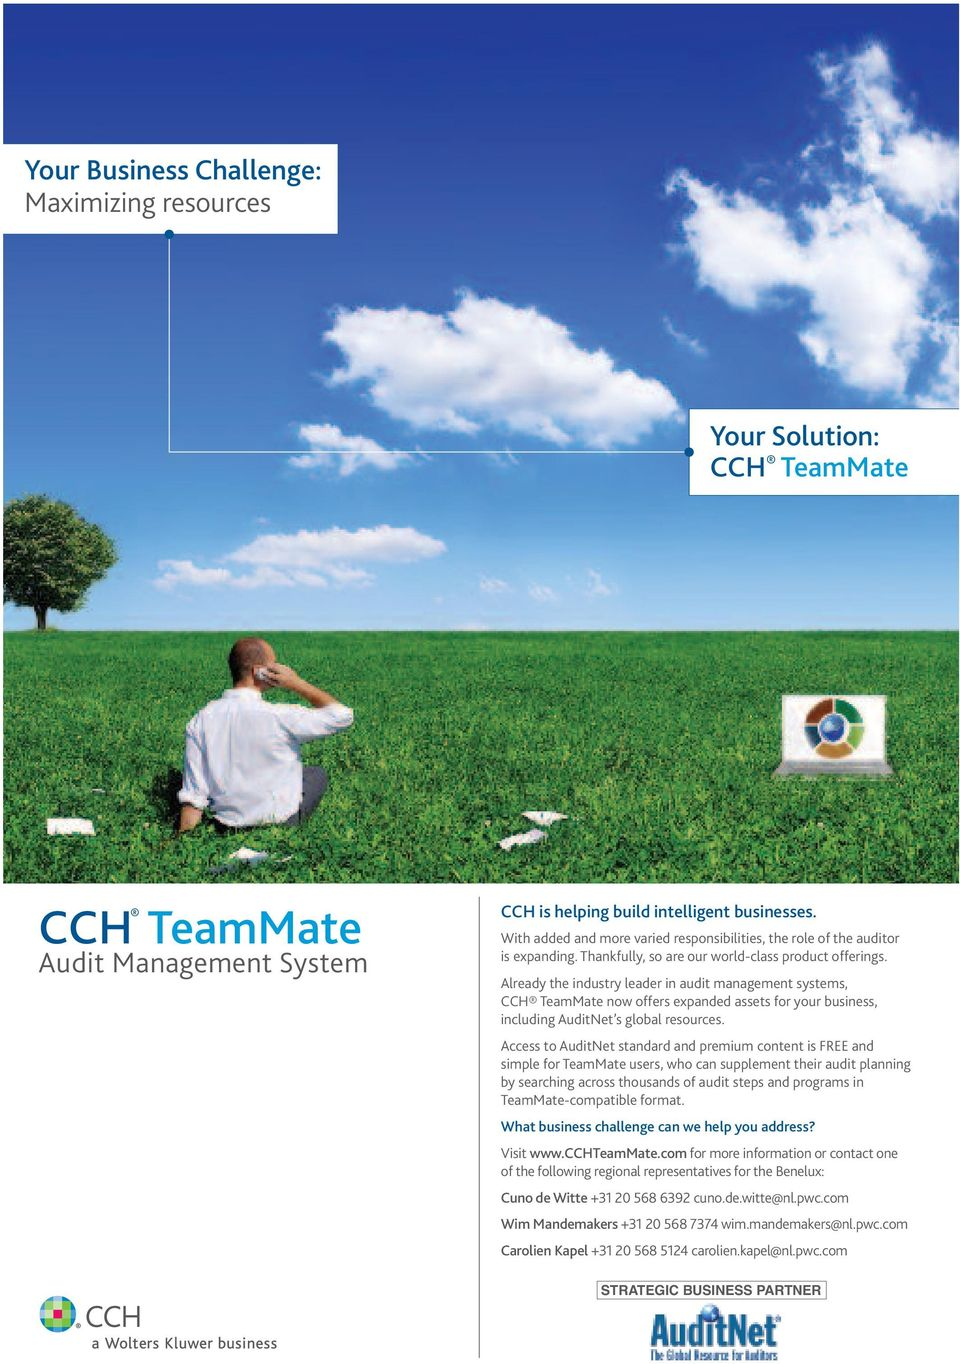 Already the industry leader in audit management systems, CCH TeamMate now offers expanded assets for your business, including AuditNet s global resources.